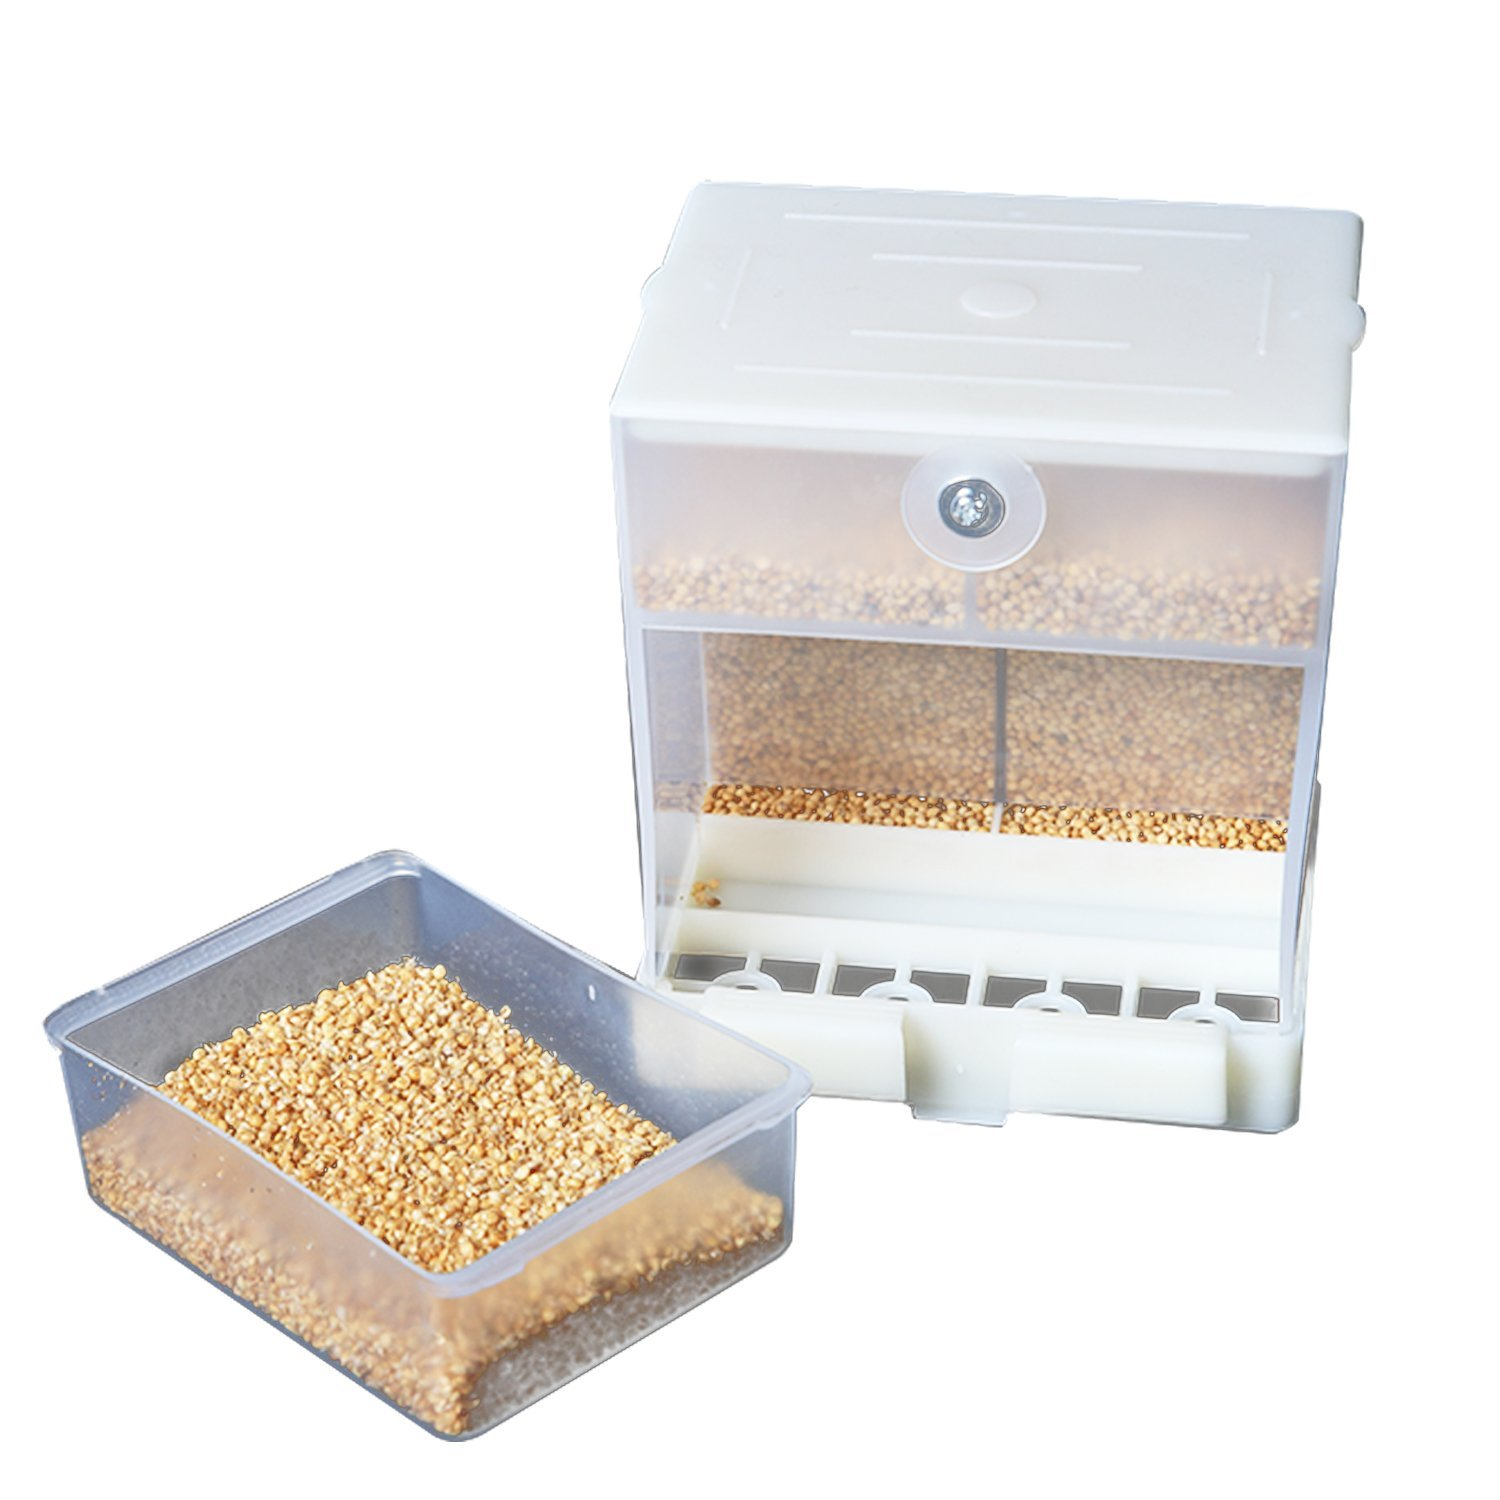 webeauty Parrot Automatic Feeder,No-Mess Bird Feeder,Food Container for Budgerigar Canary Cockatiel Finch